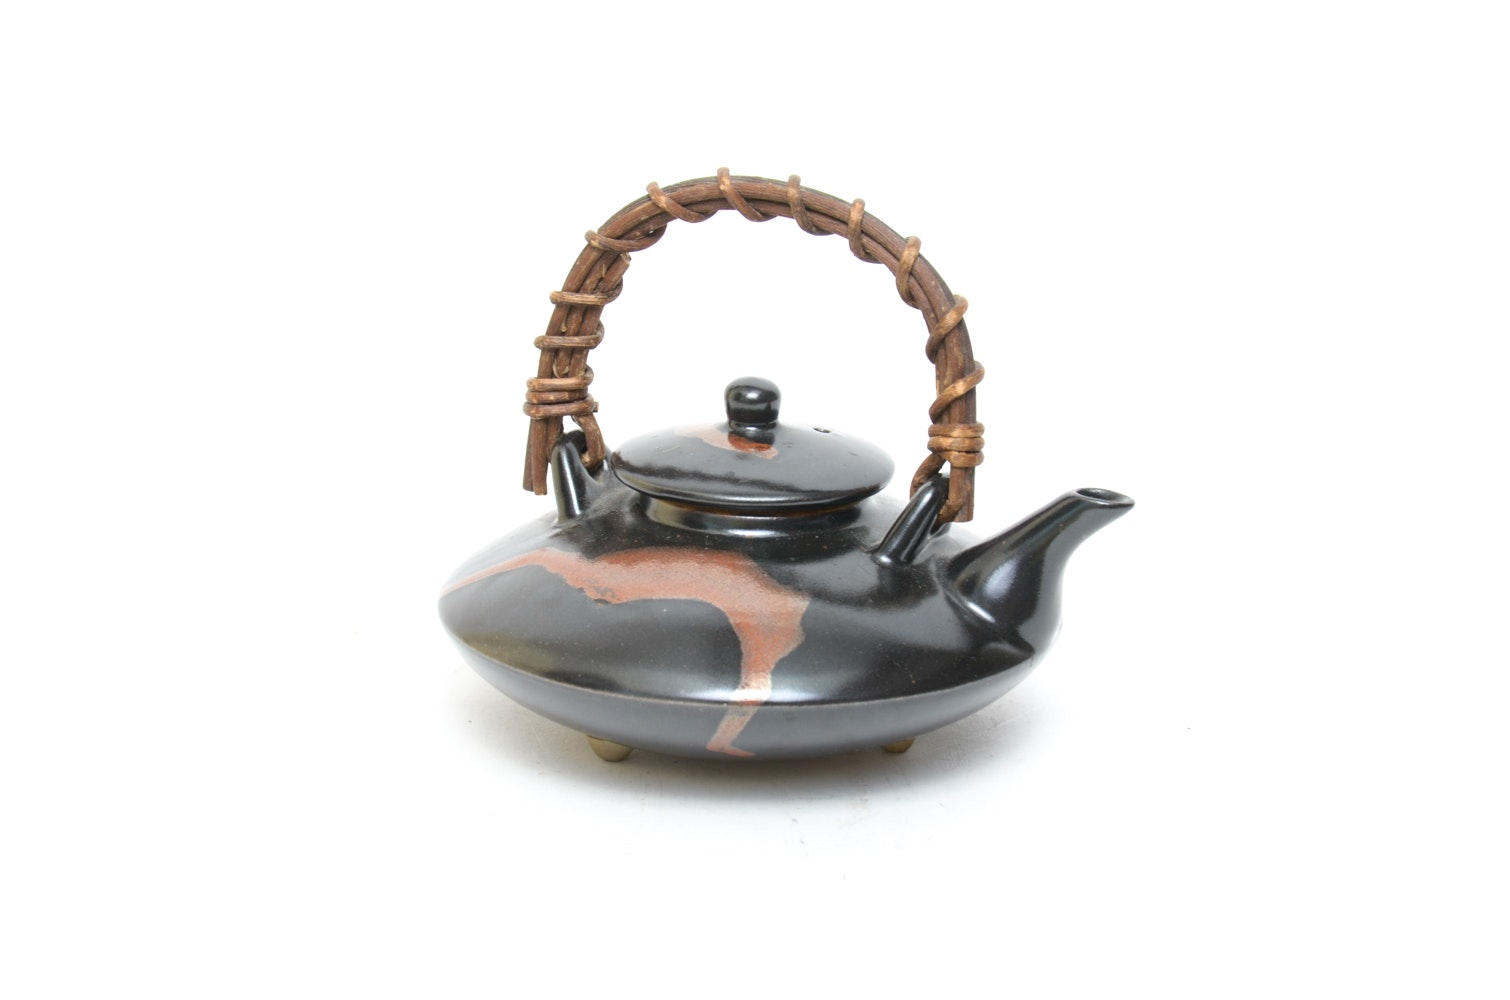 Japanese Ceramic Teapot with Vine Handle